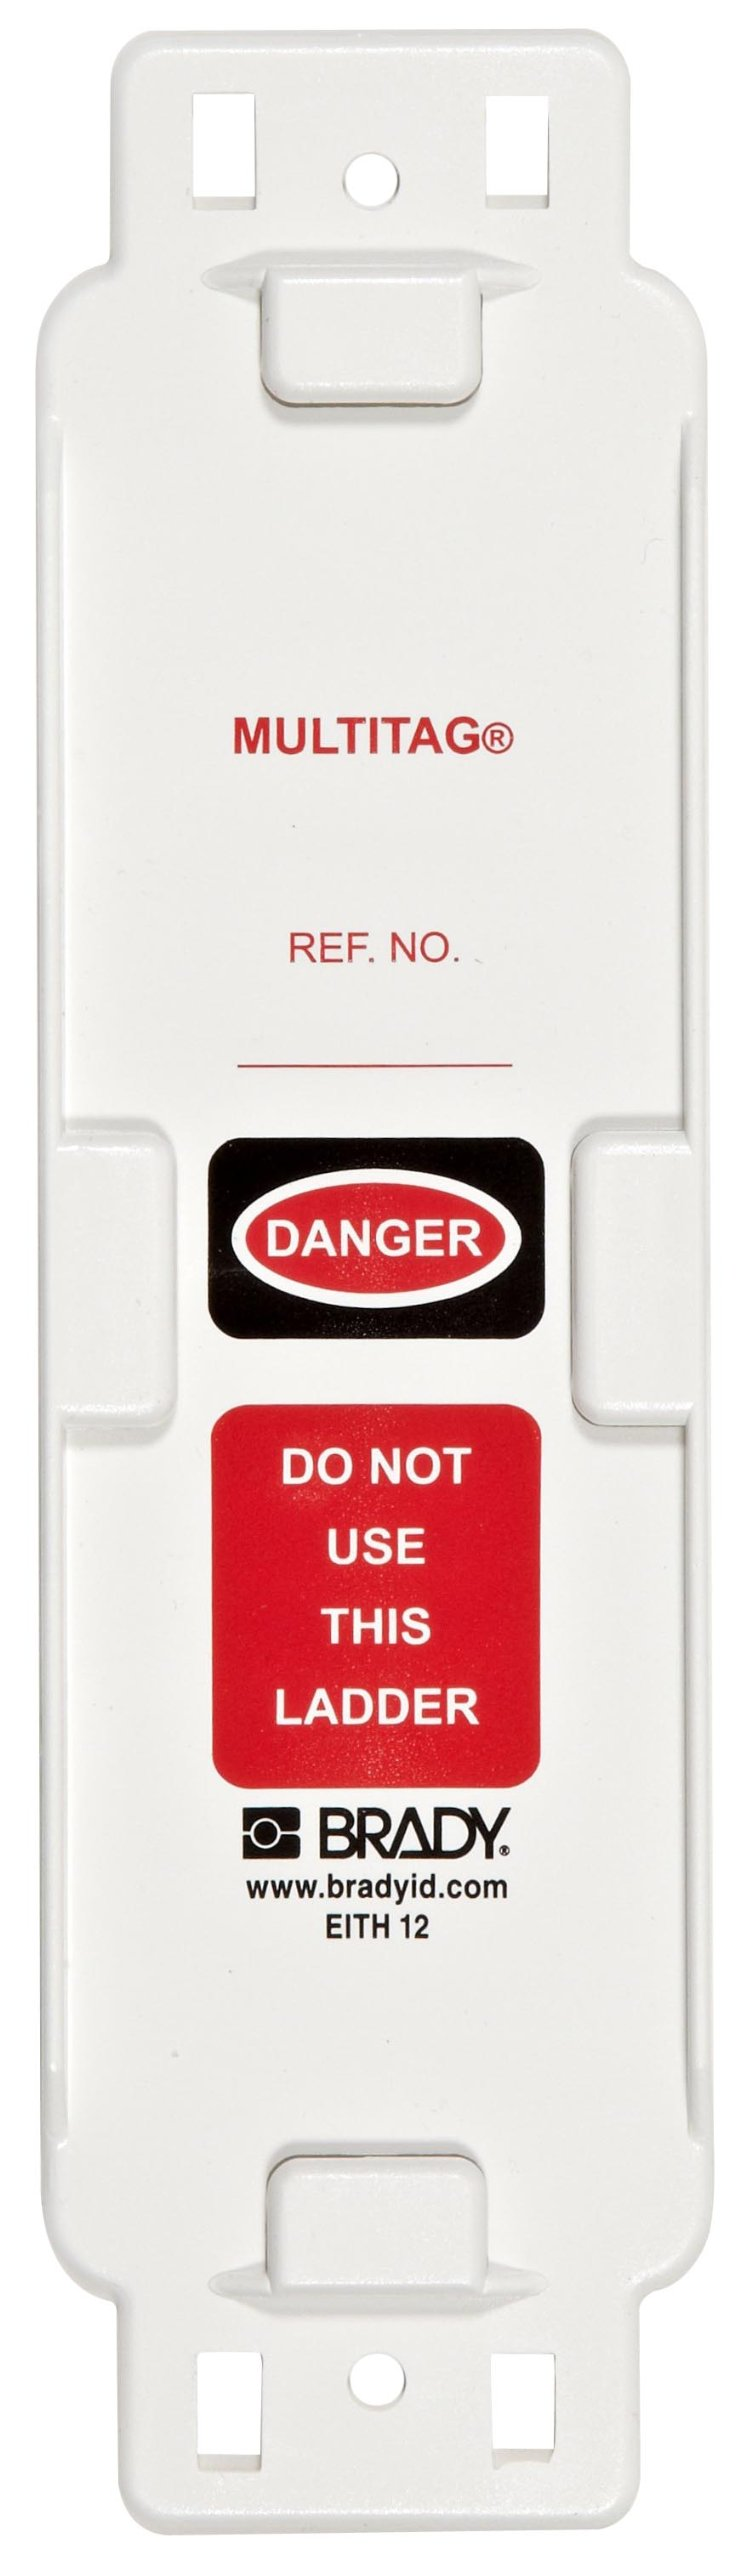 Brady LAD-EITH12 8-1/4'' Height, 2-1/4'' Width, Plastic, White Color Laddertag Holder, Front Legend ''Danger, Do Not Use This Ladder'' (Pack Of 10)